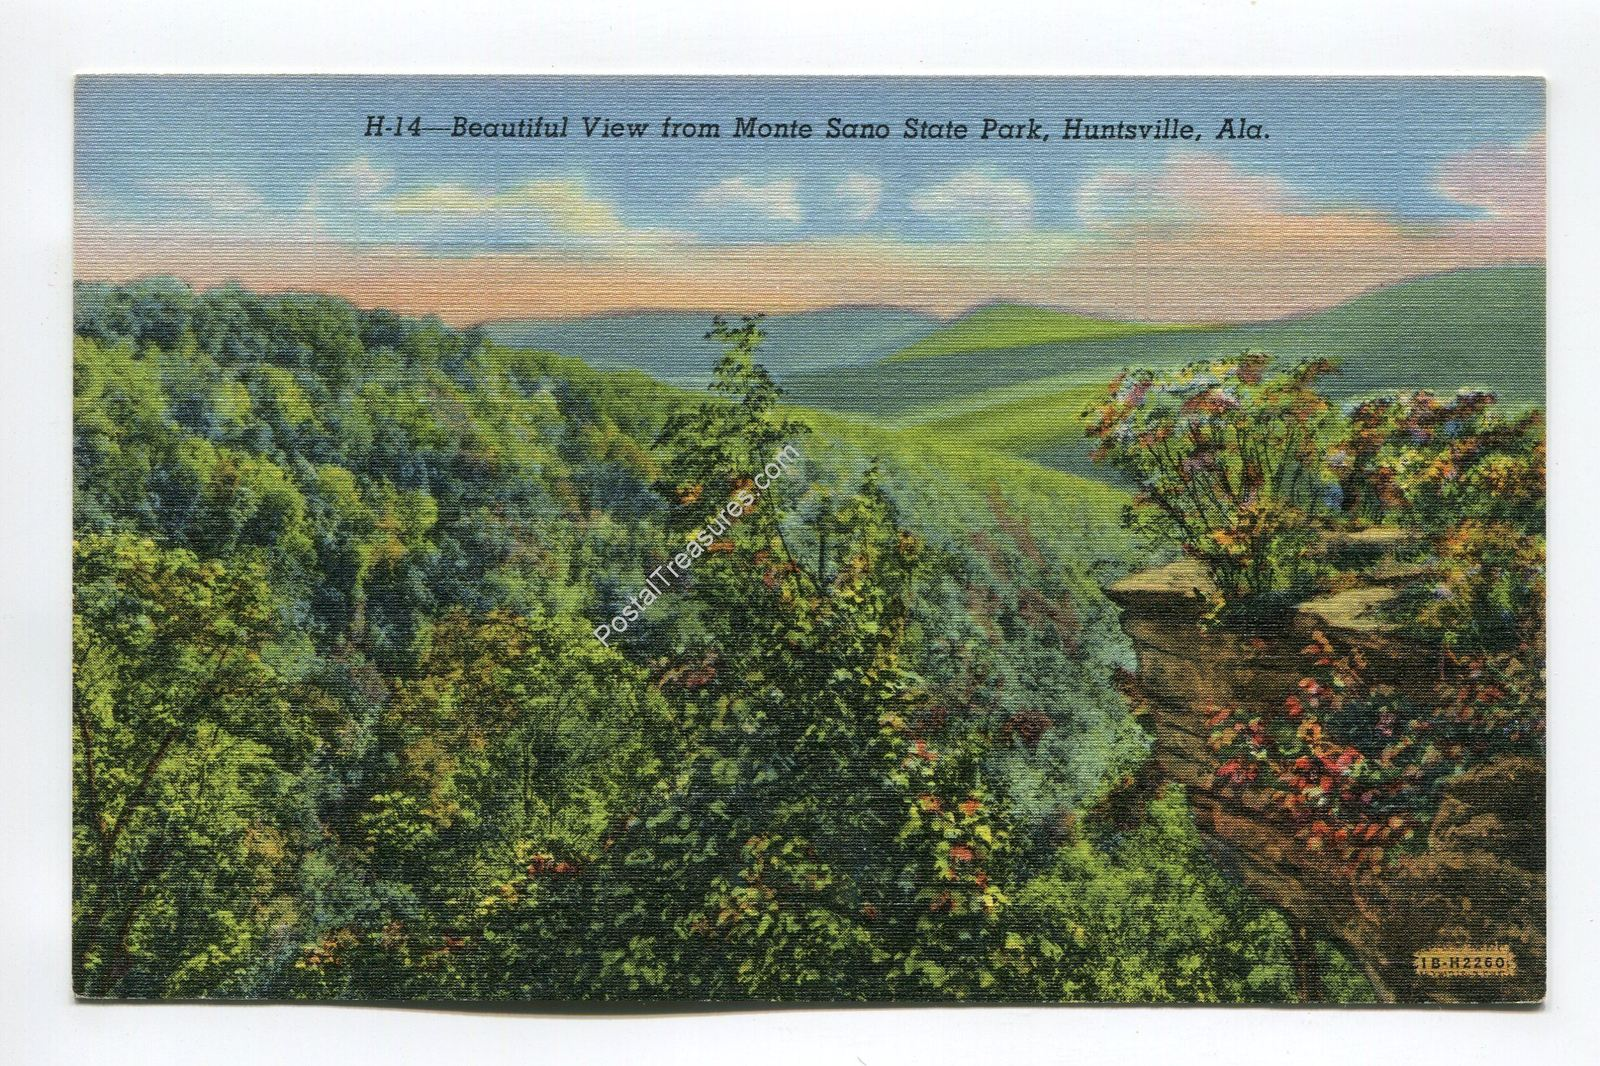 Primary image for Beautiful View from Monte Sano State Park Huntsville Alabama